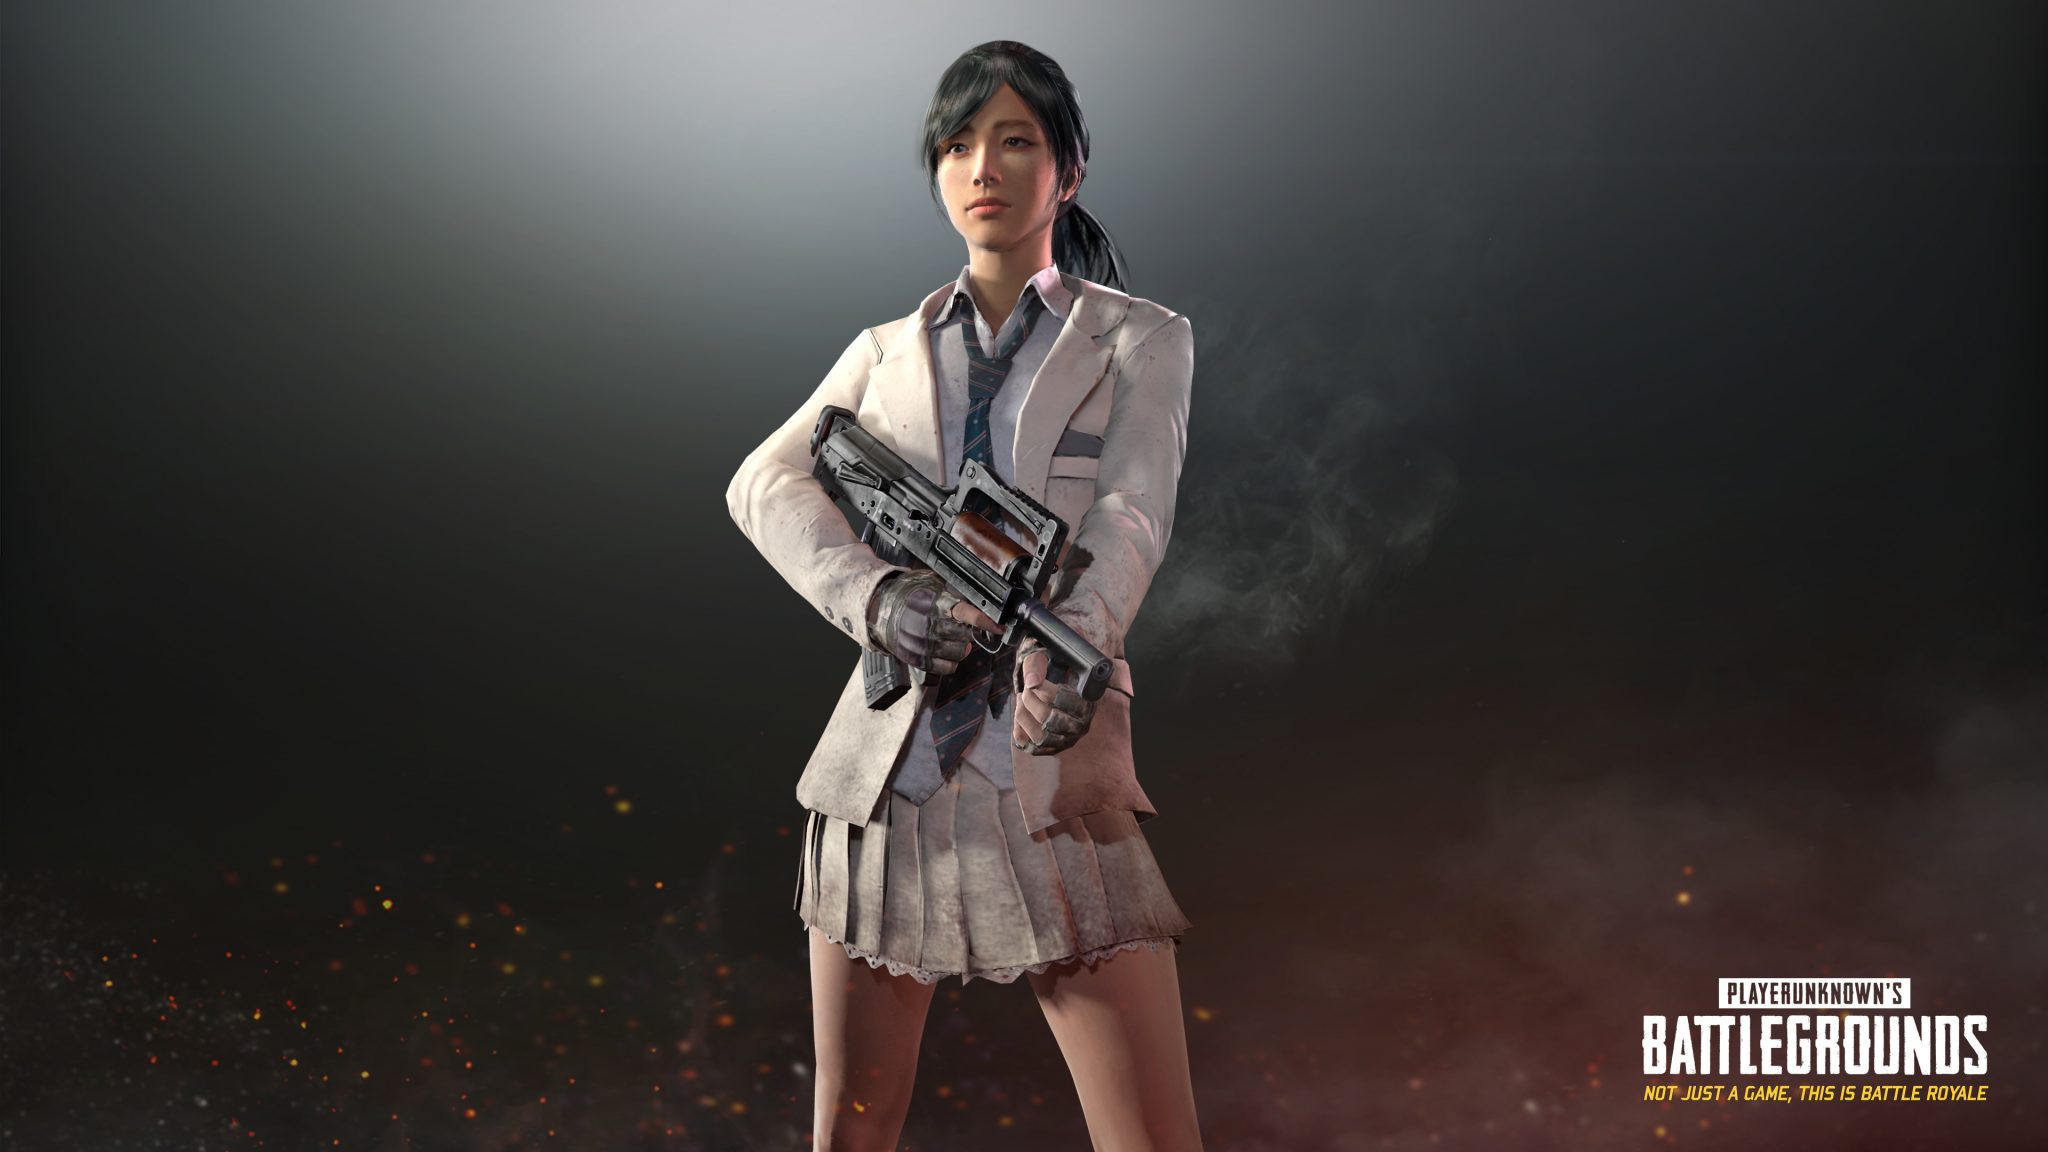 PUBG caisses loot box